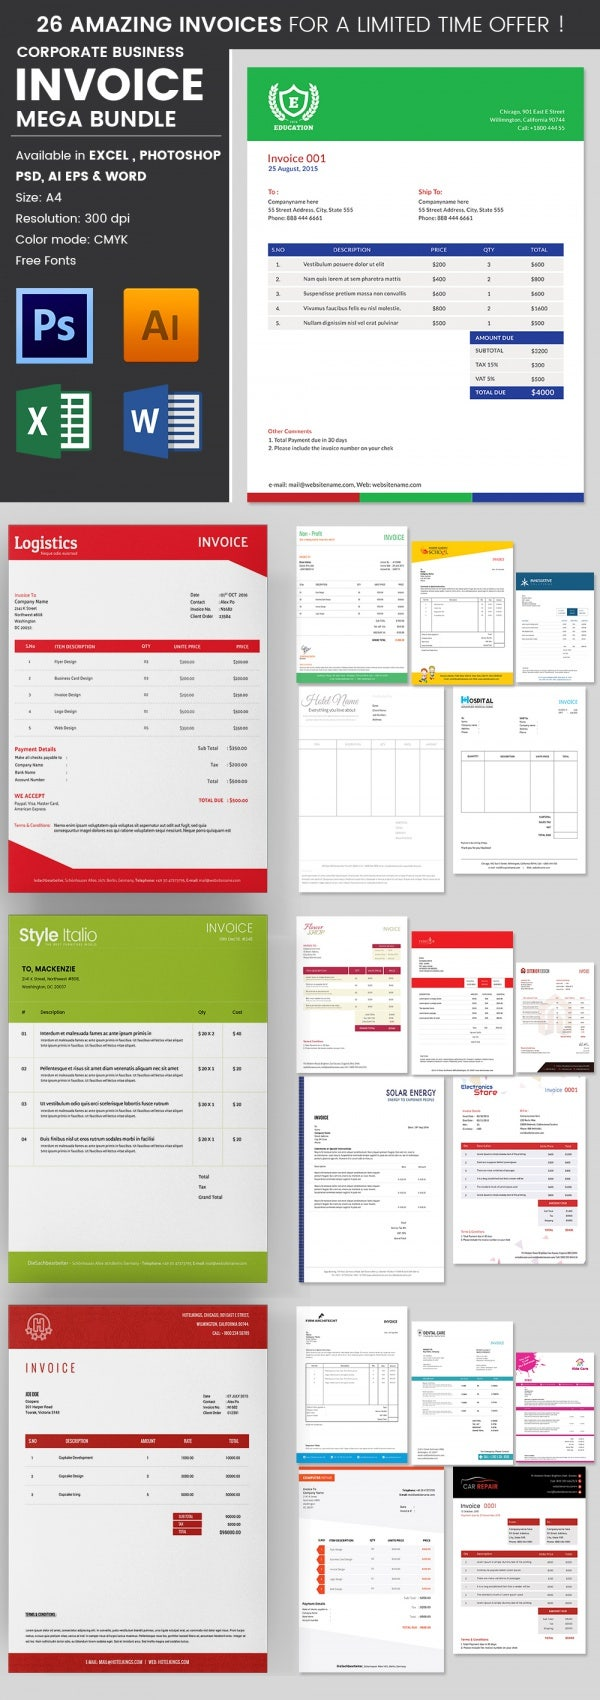 travel invoice templates word excel pdf format 26 business invoice templates bundle in 4 different formats